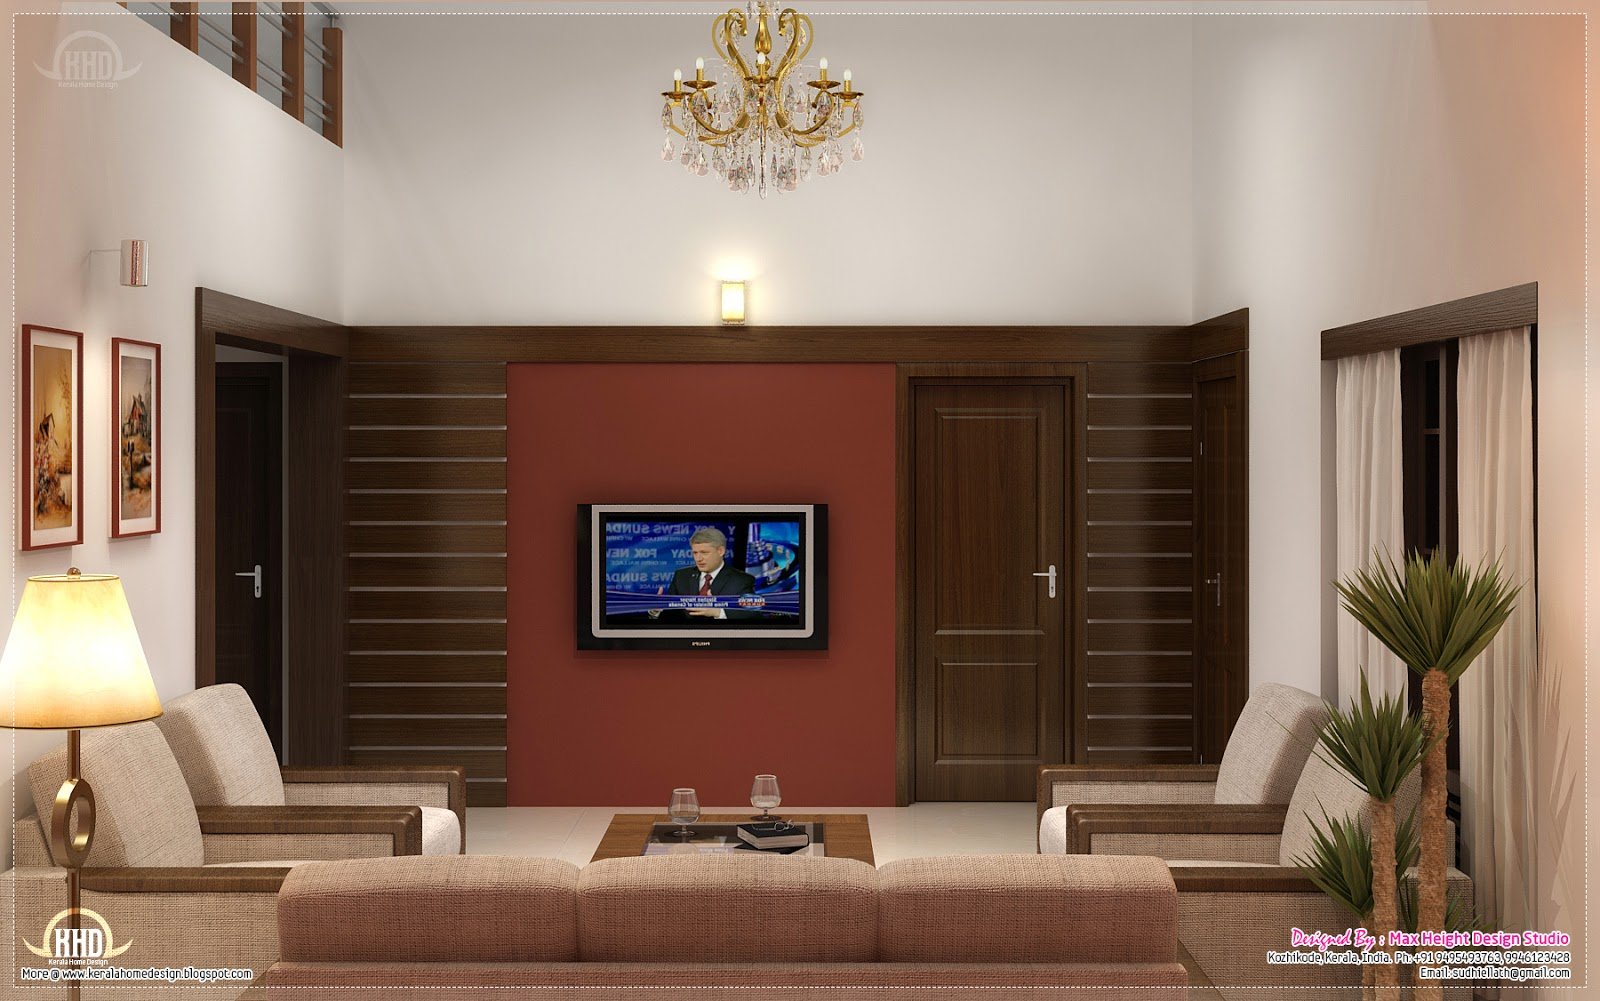 Home interior design ideas house design plans for Simple living room designs in india